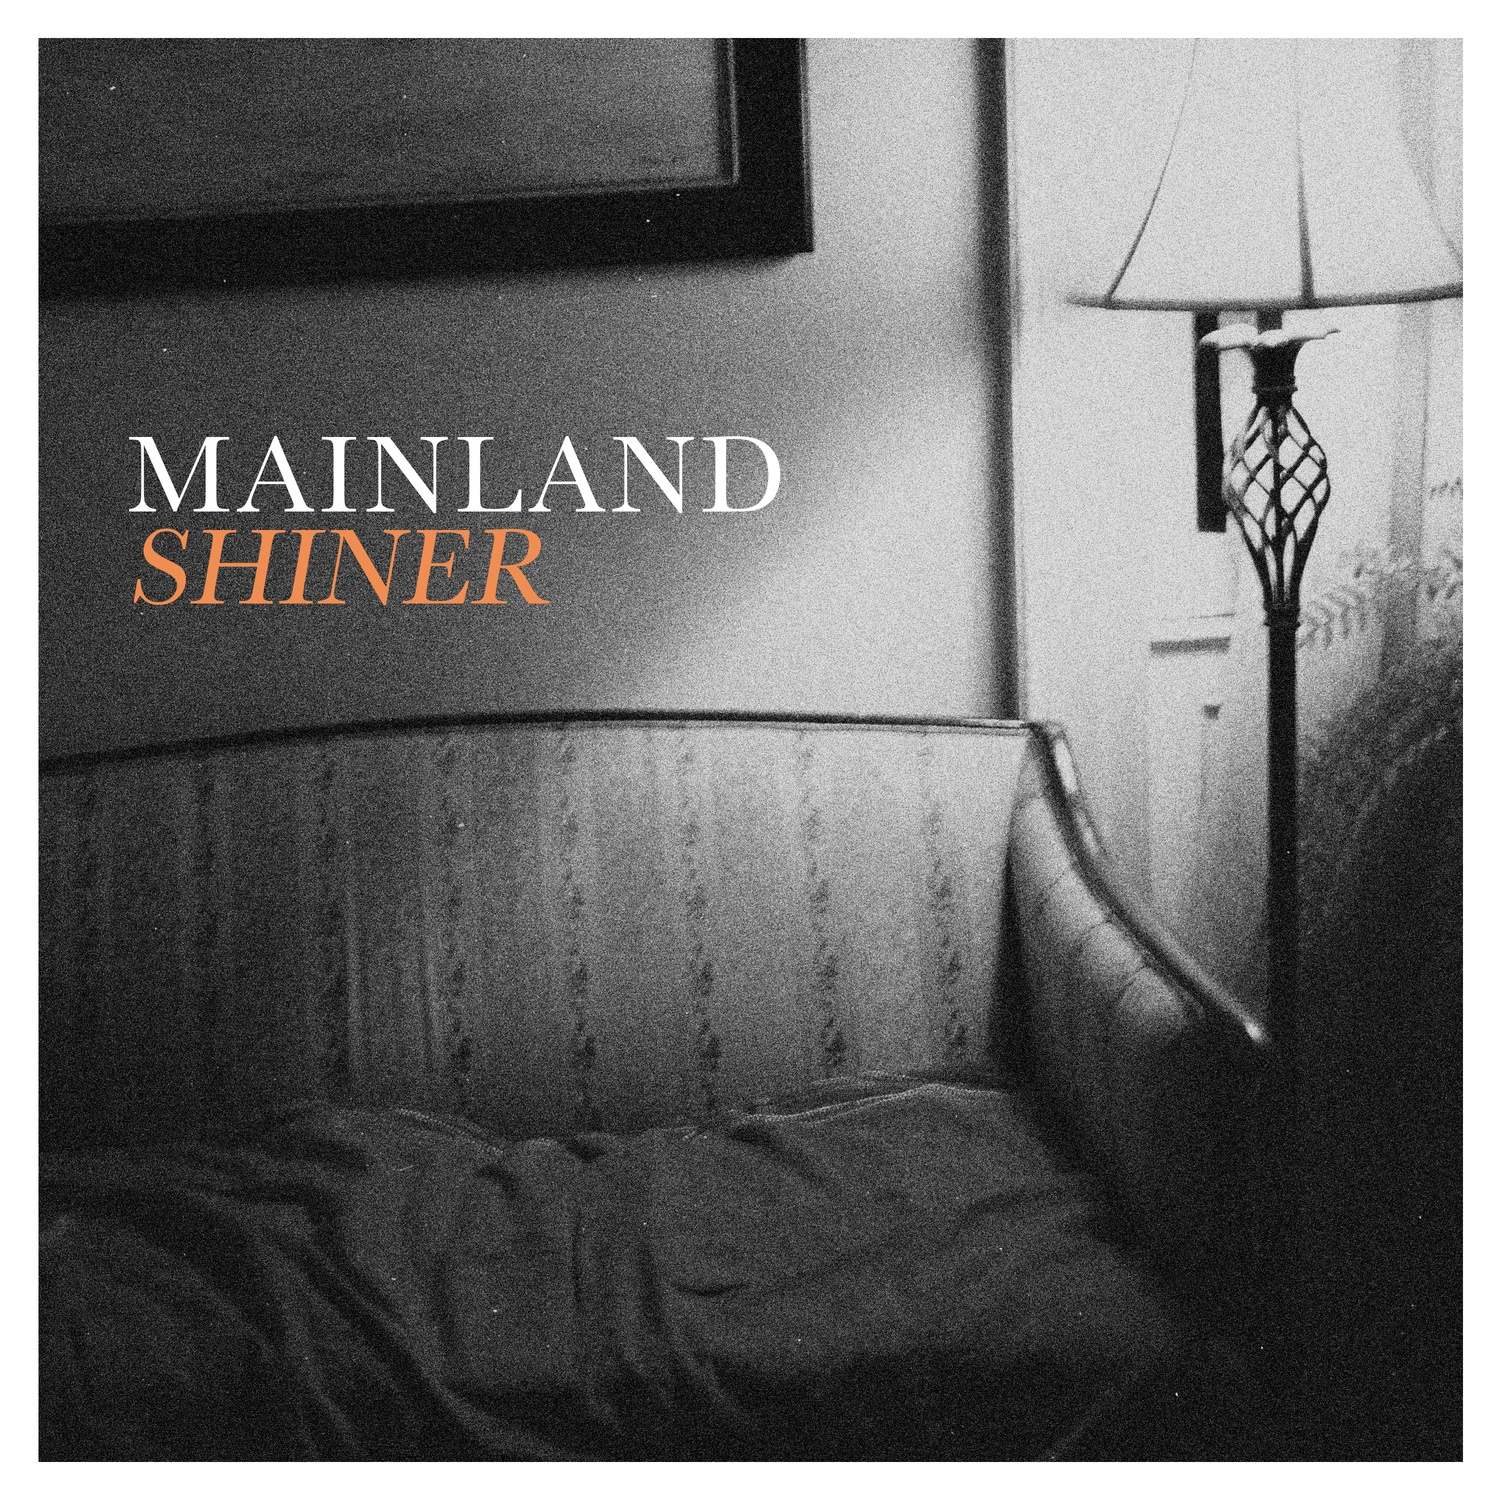 Mainland's EP 'Shiner' is out now.